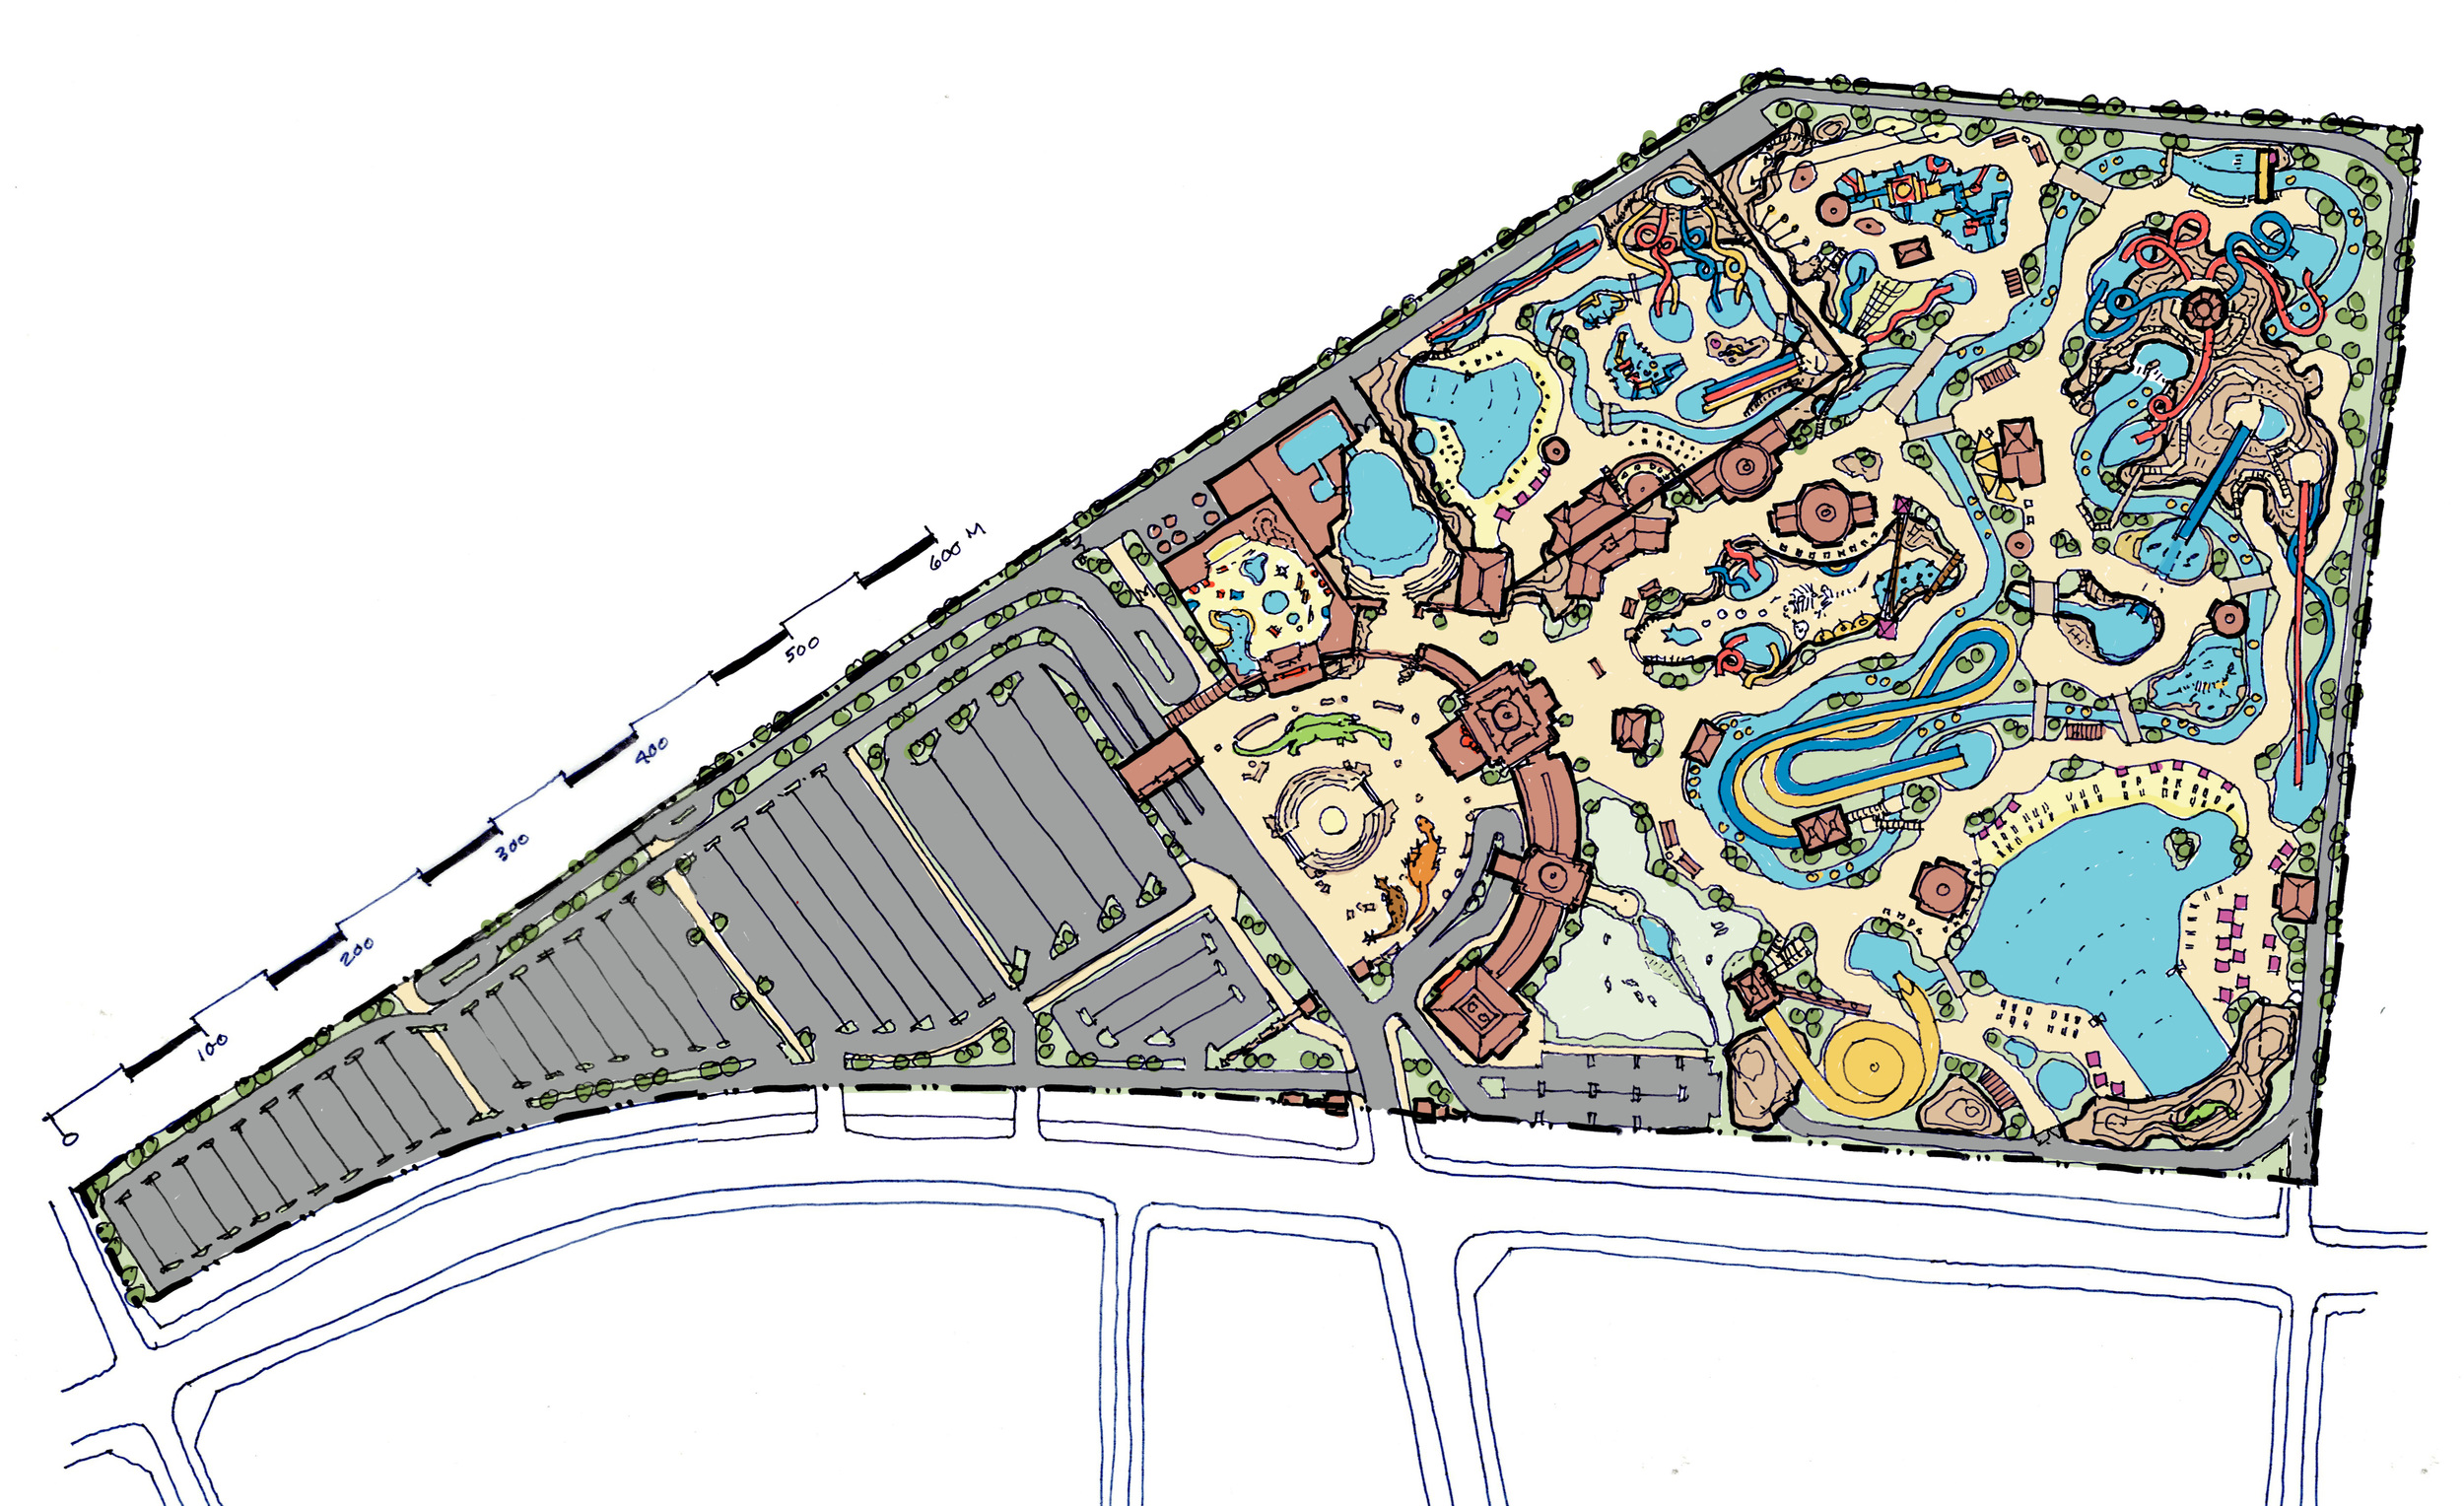 Tialing Lost World water park